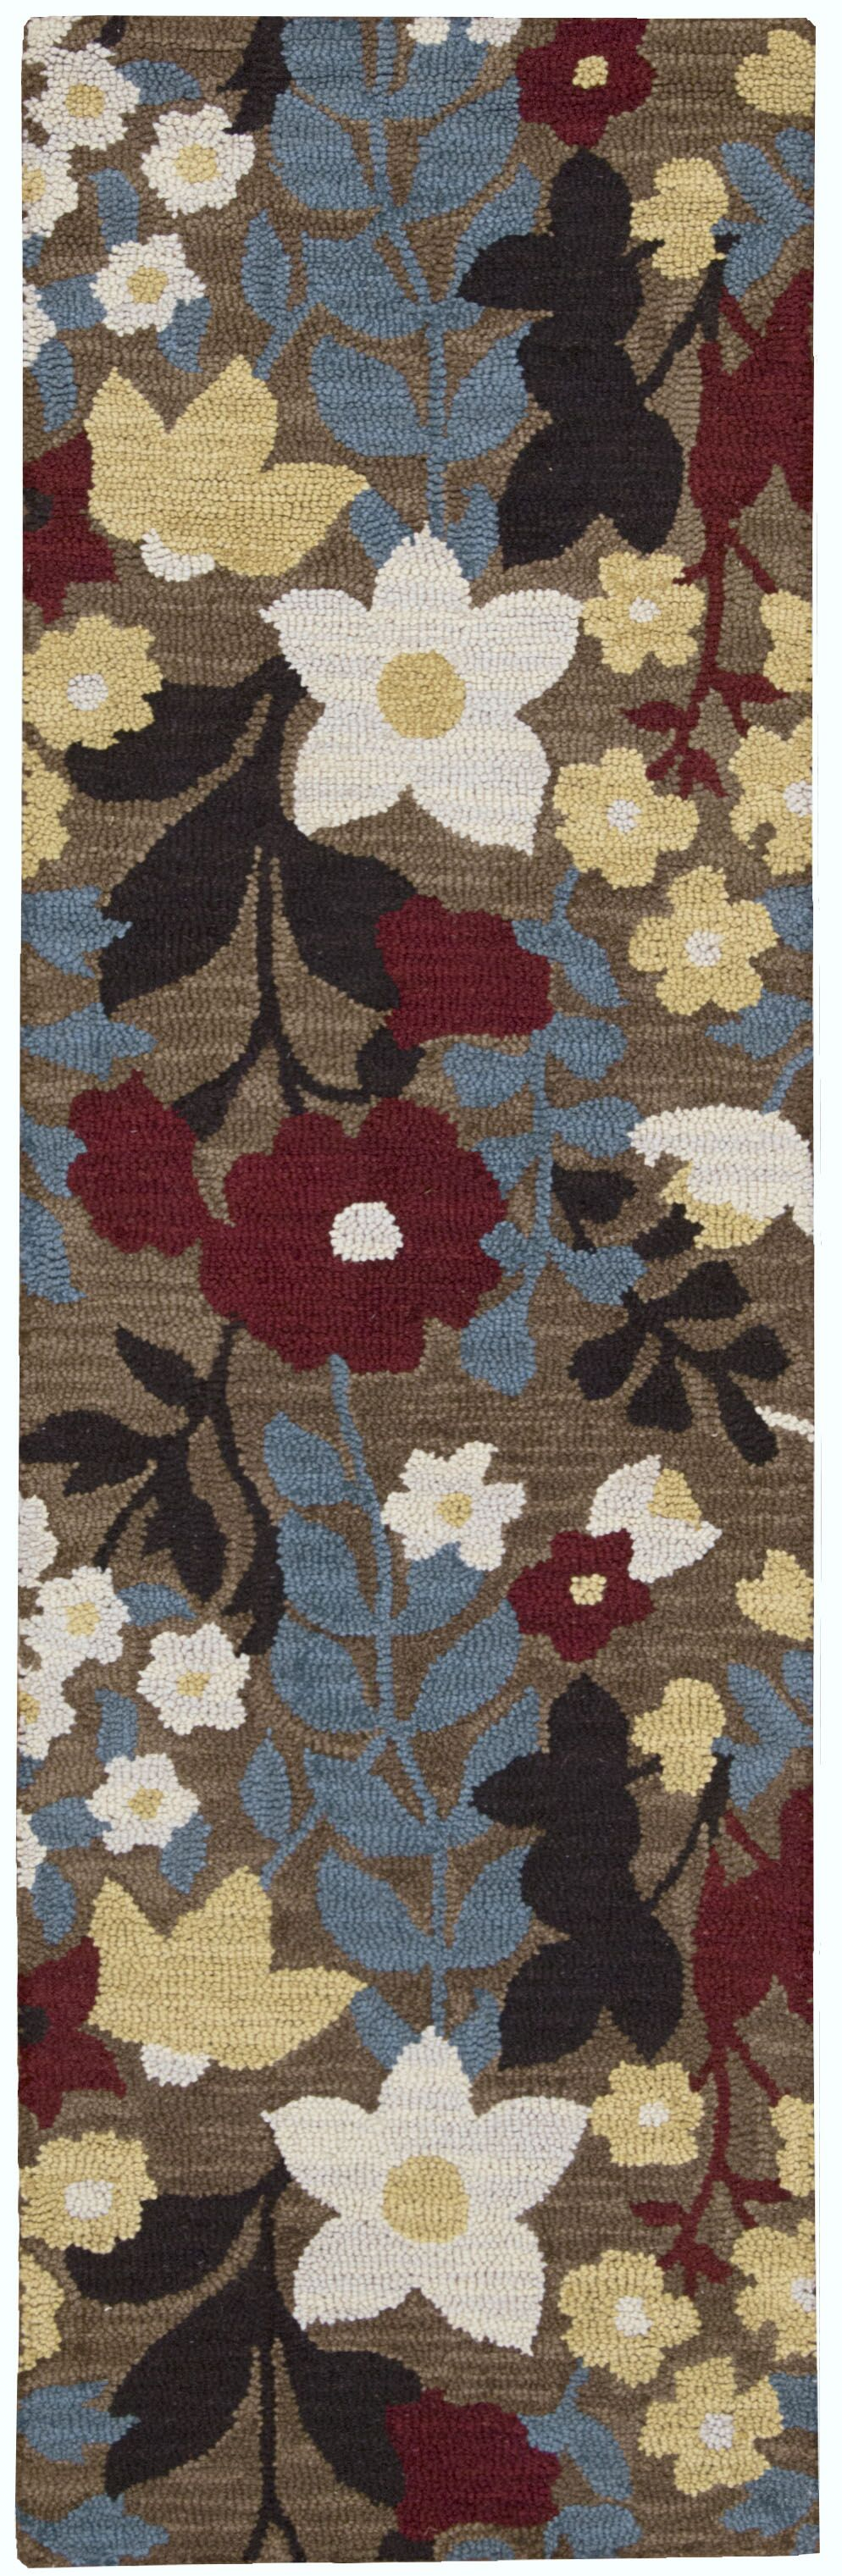 Huetter Hand-Tufted Wool Brown Area Rug Rug Size: Runner 2'3